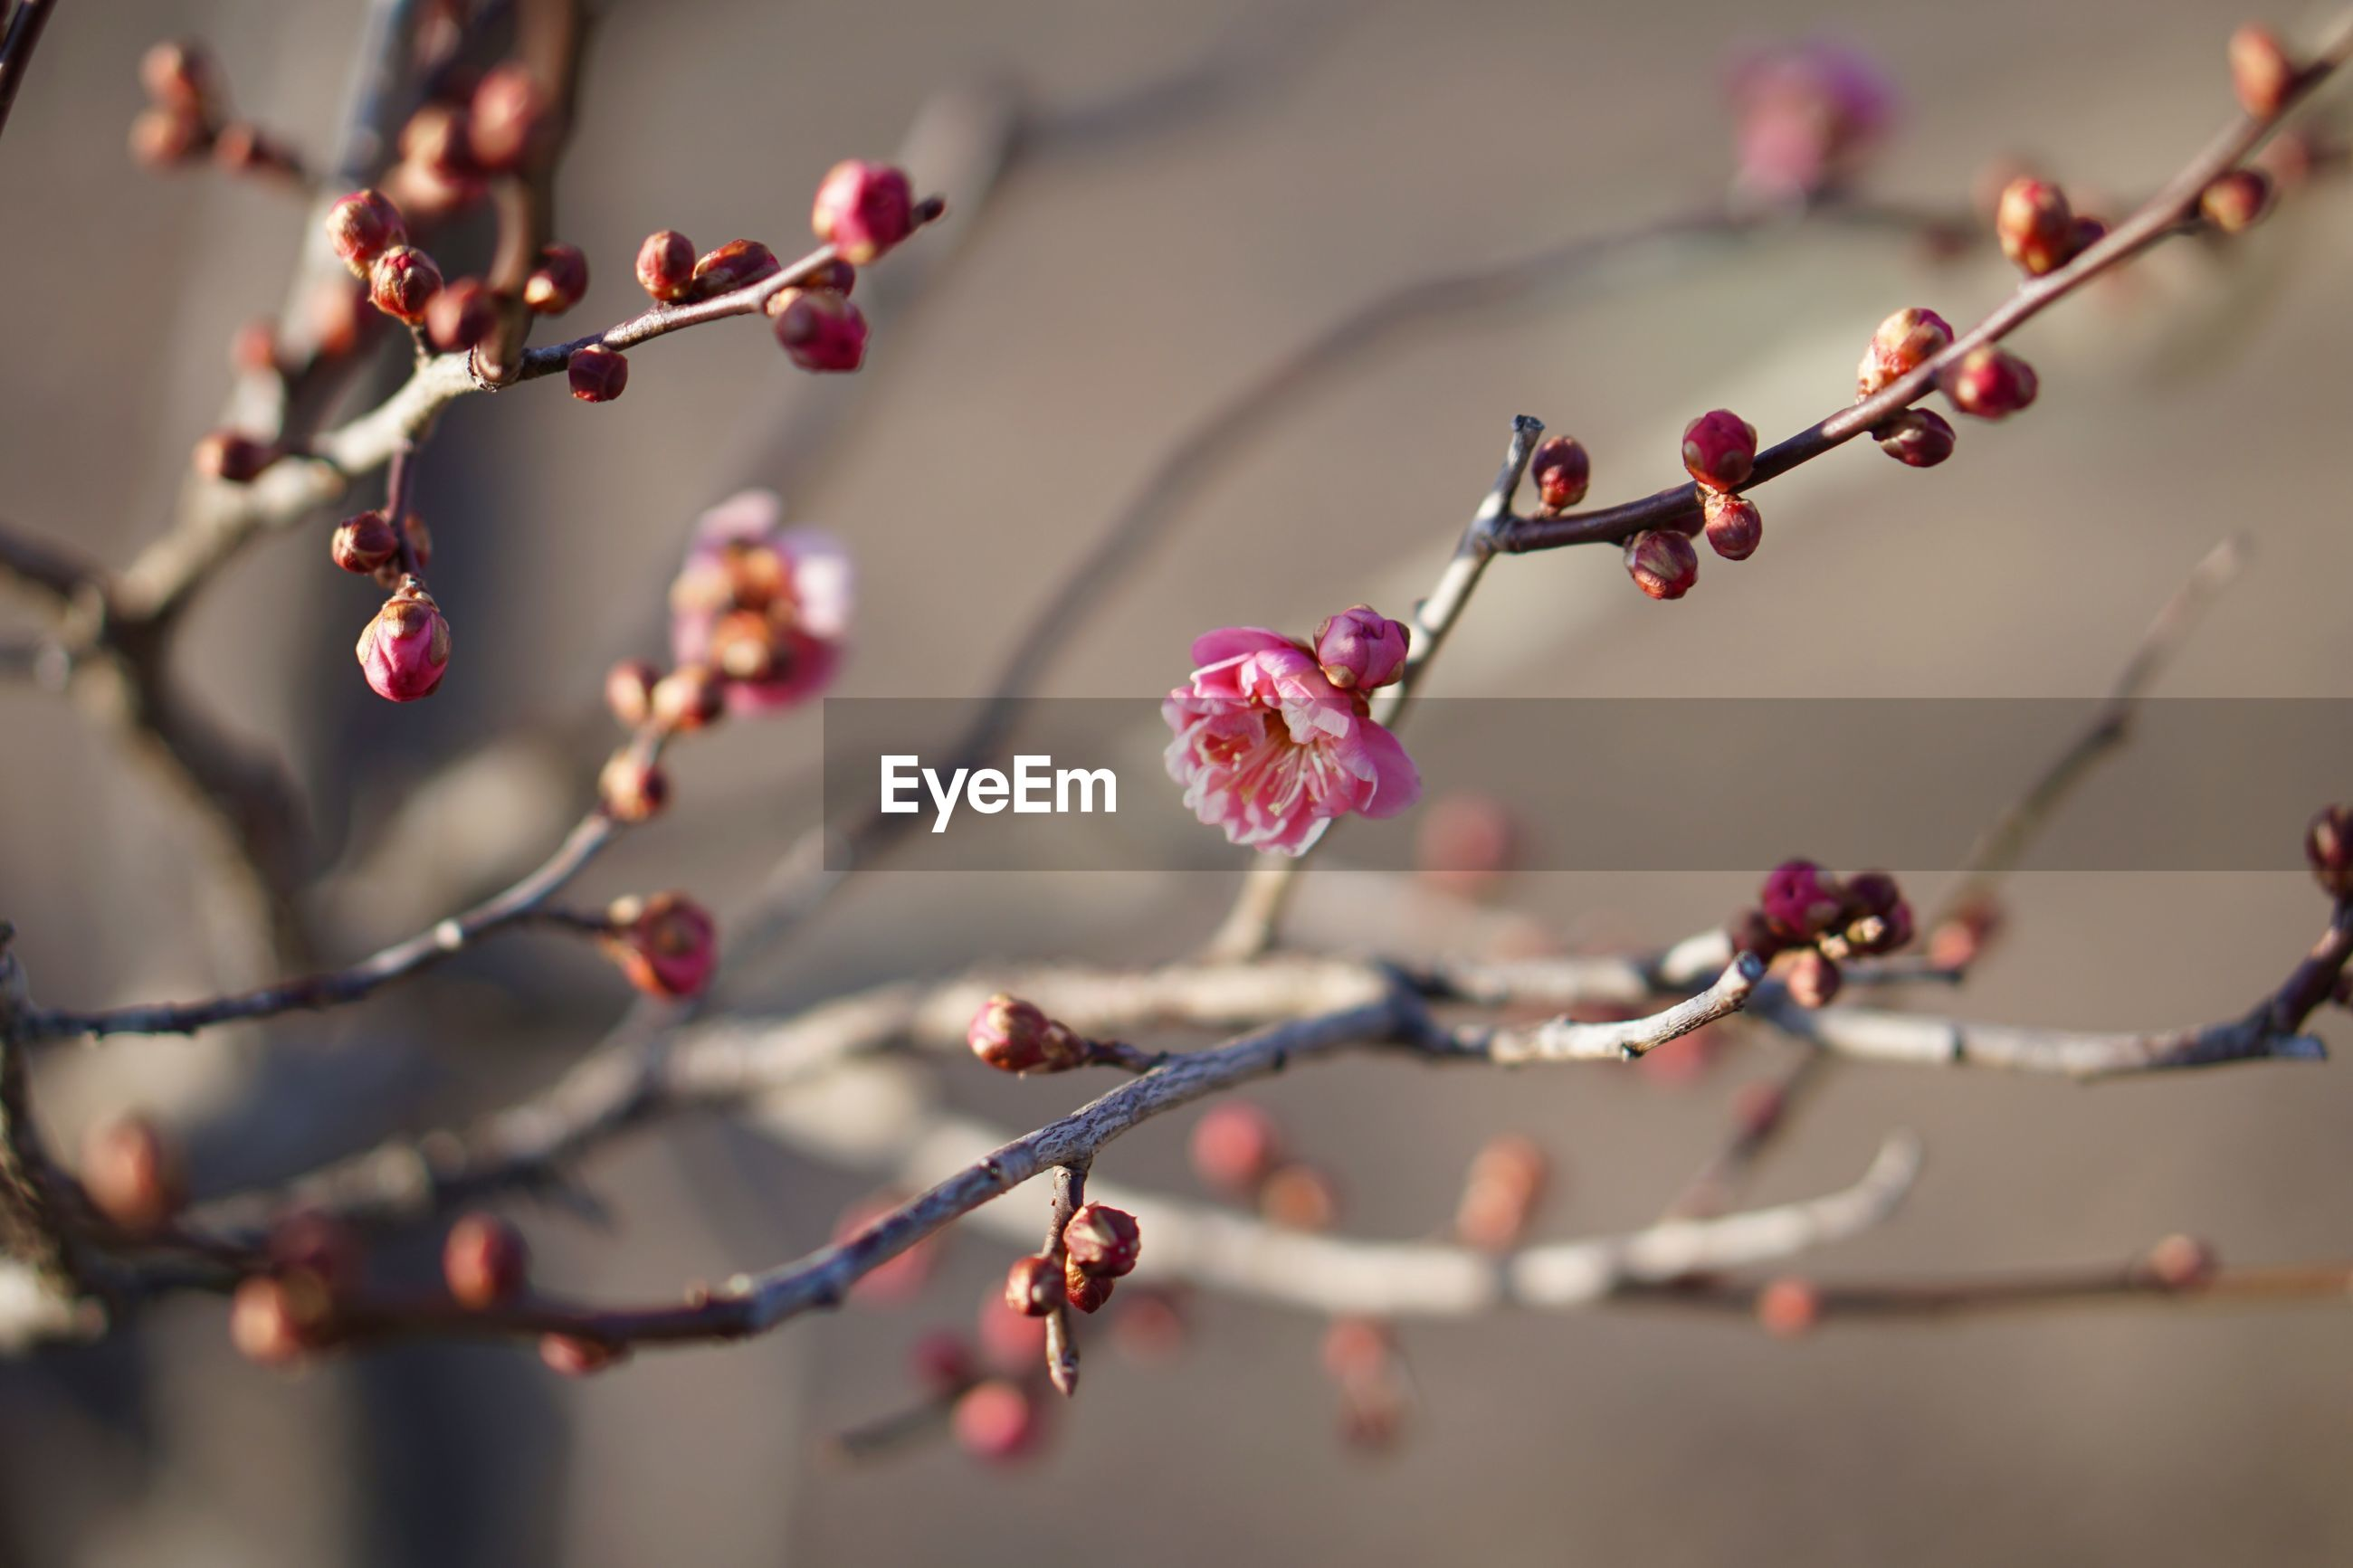 plant, growth, beauty in nature, close-up, selective focus, branch, flower, tree, focus on foreground, fragility, freshness, flowering plant, vulnerability, no people, twig, nature, day, blossom, petal, pink color, outdoors, springtime, plum blossom, flower head, cherry tree, cherry blossom